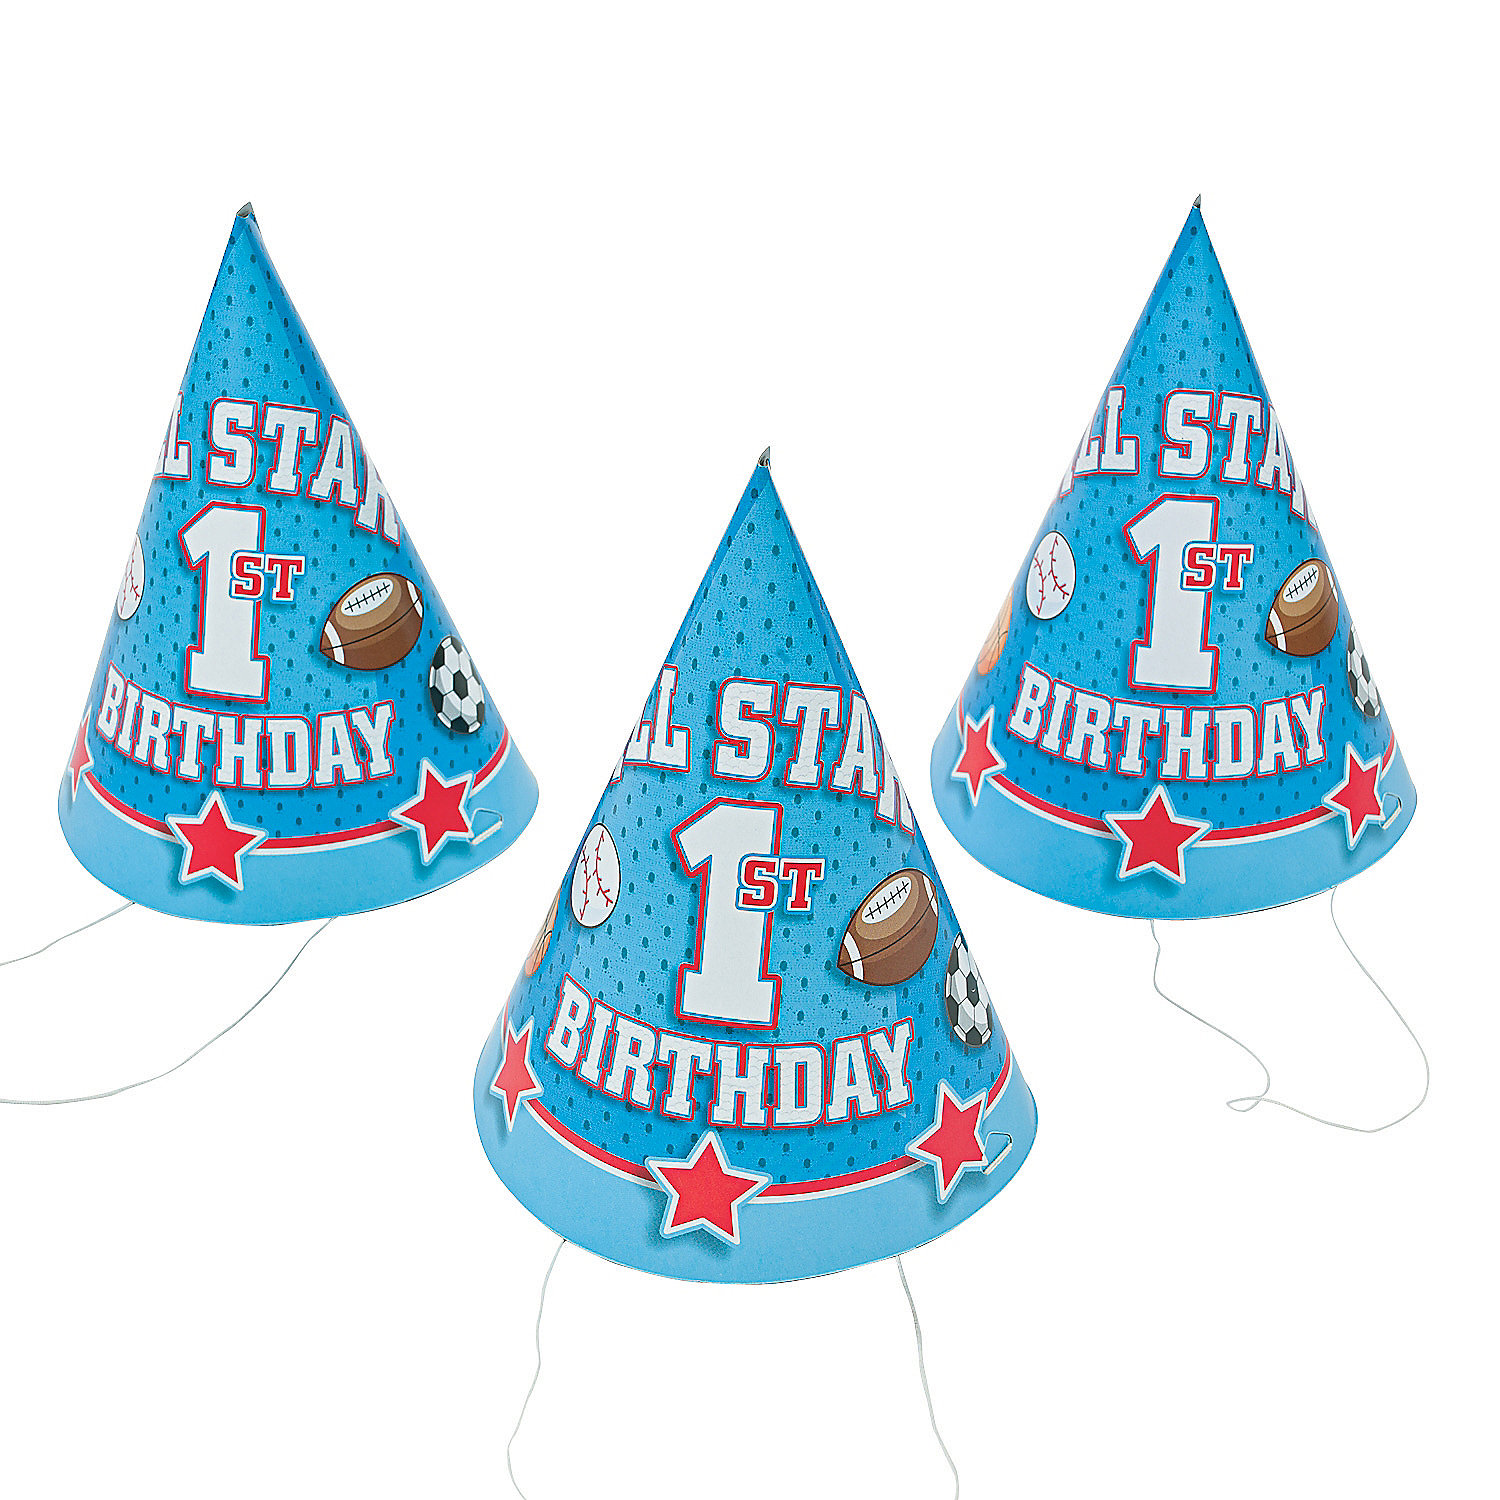 Details About IN 13598755 1st Birthday All Star Cone Hats Per Dozen